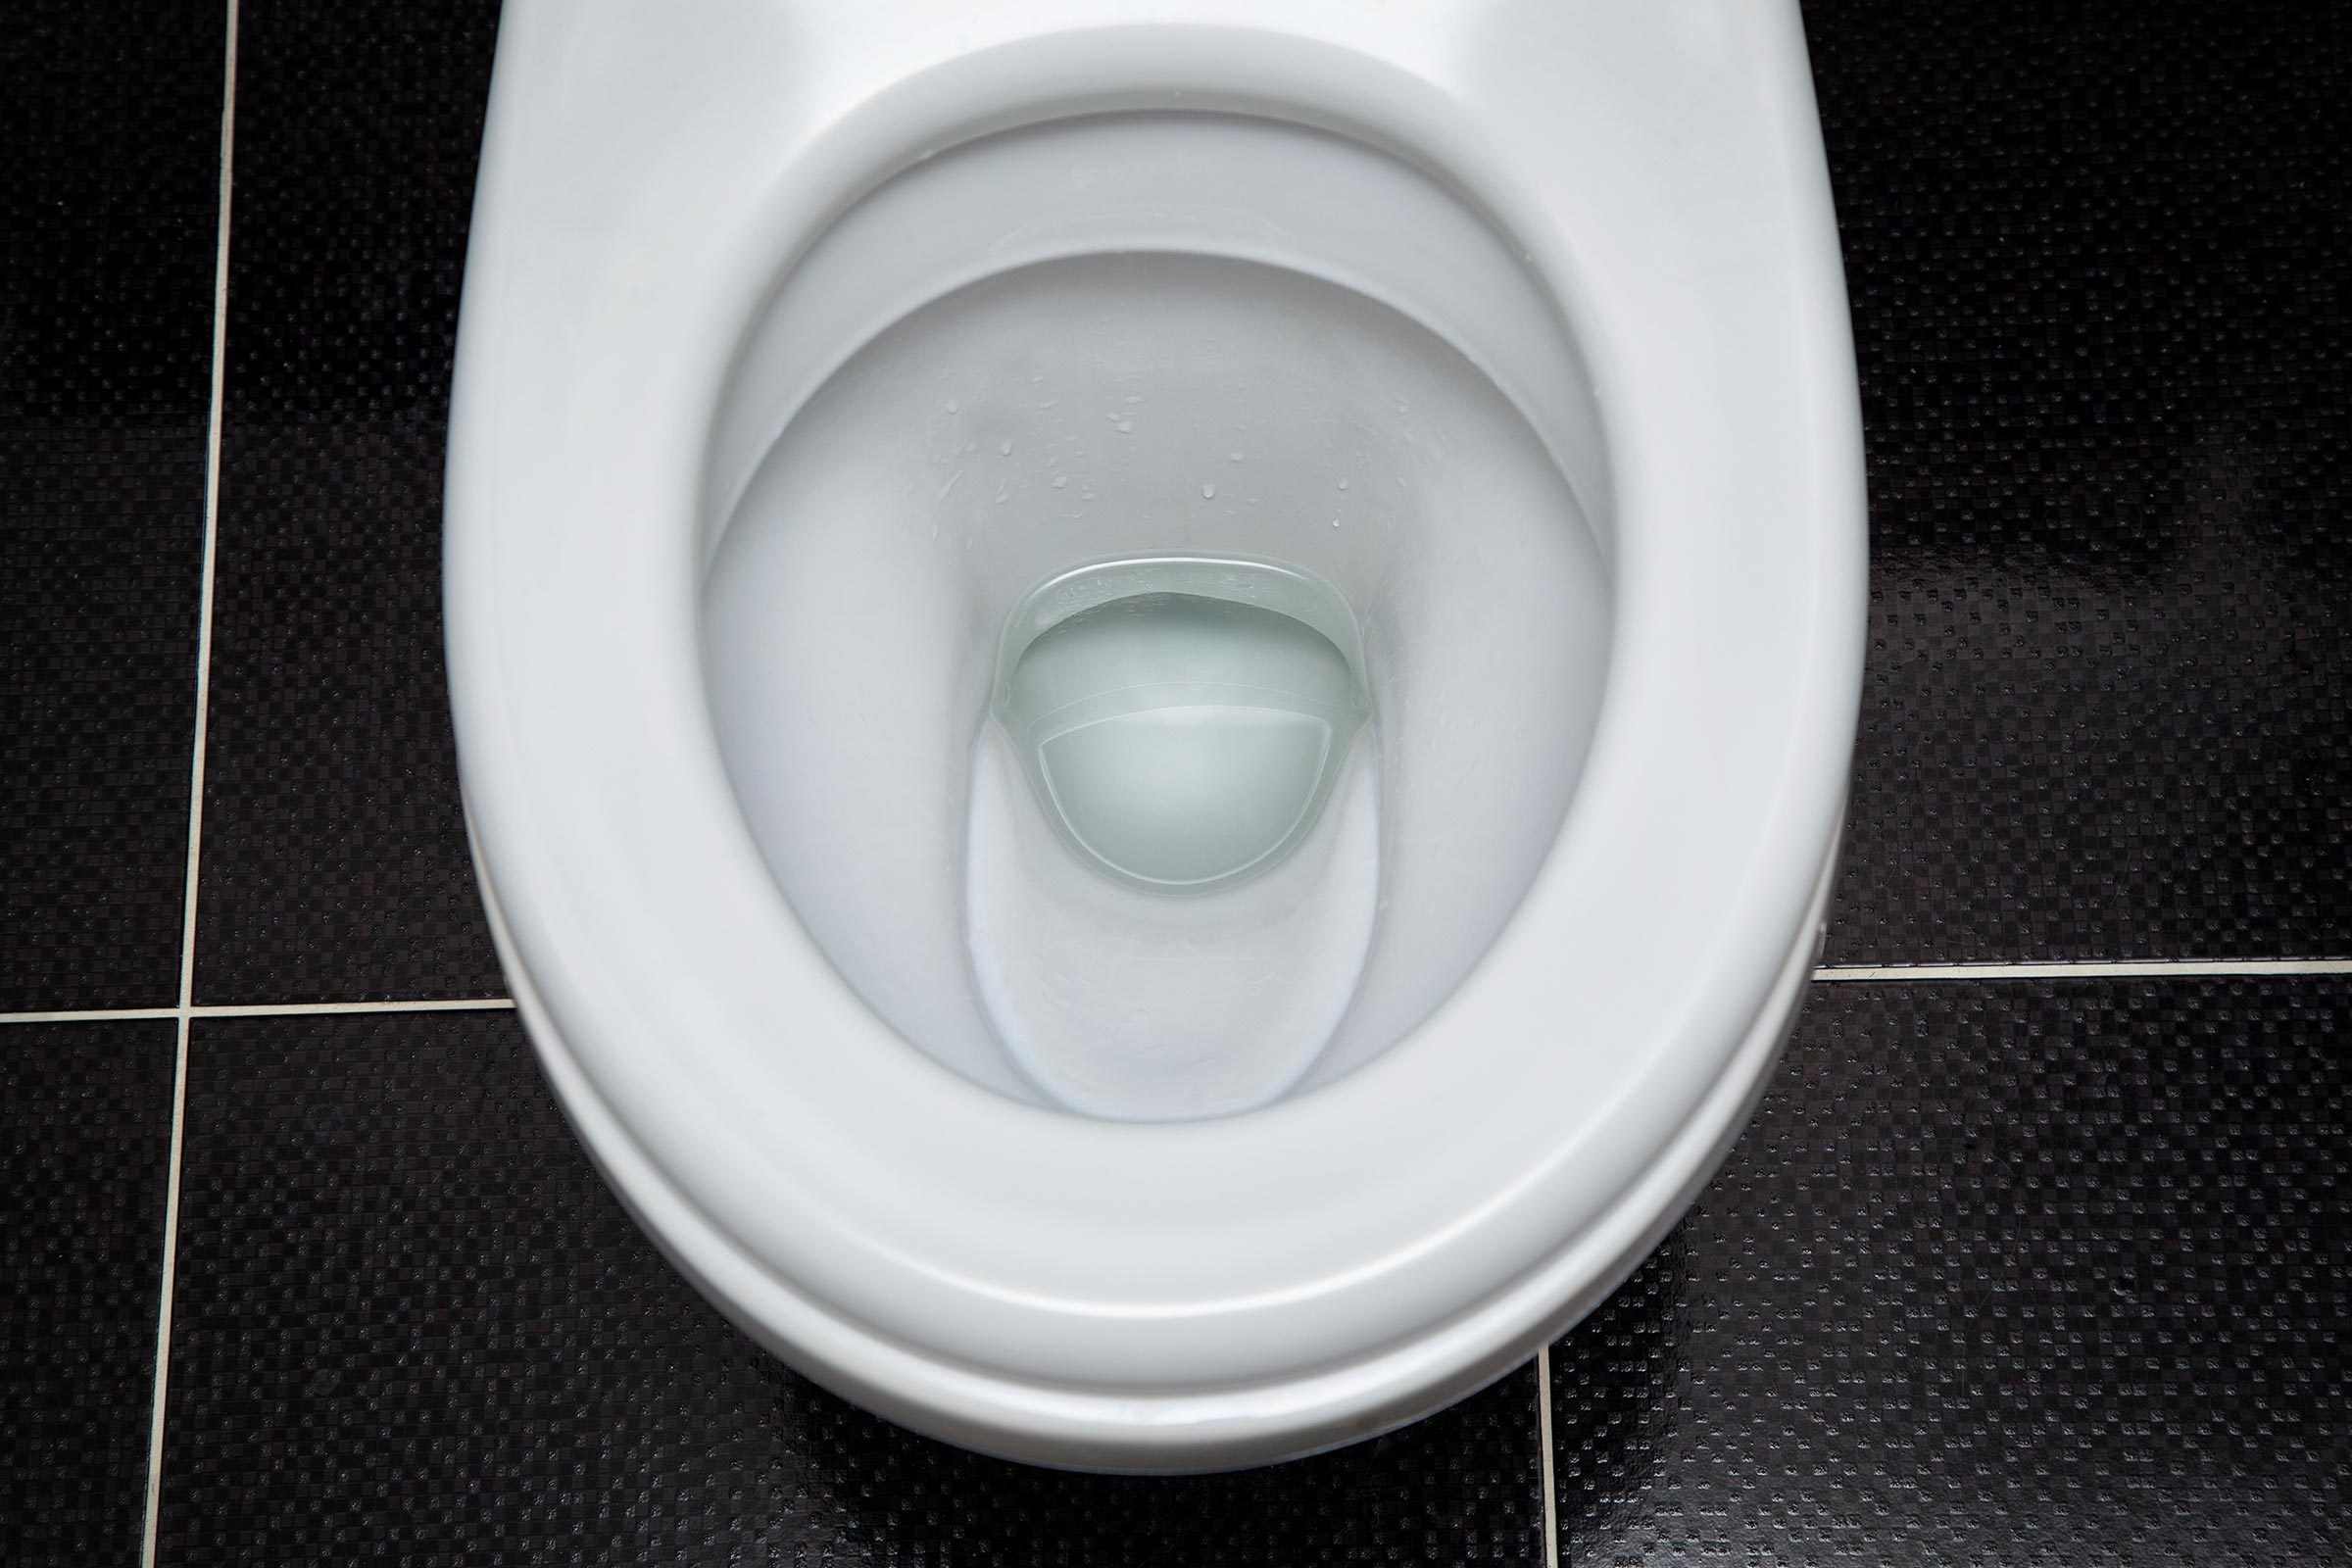 Terrific Everyday Items Dirtier Than A Toilet Seat The Healthy Pdpeps Interior Chair Design Pdpepsorg